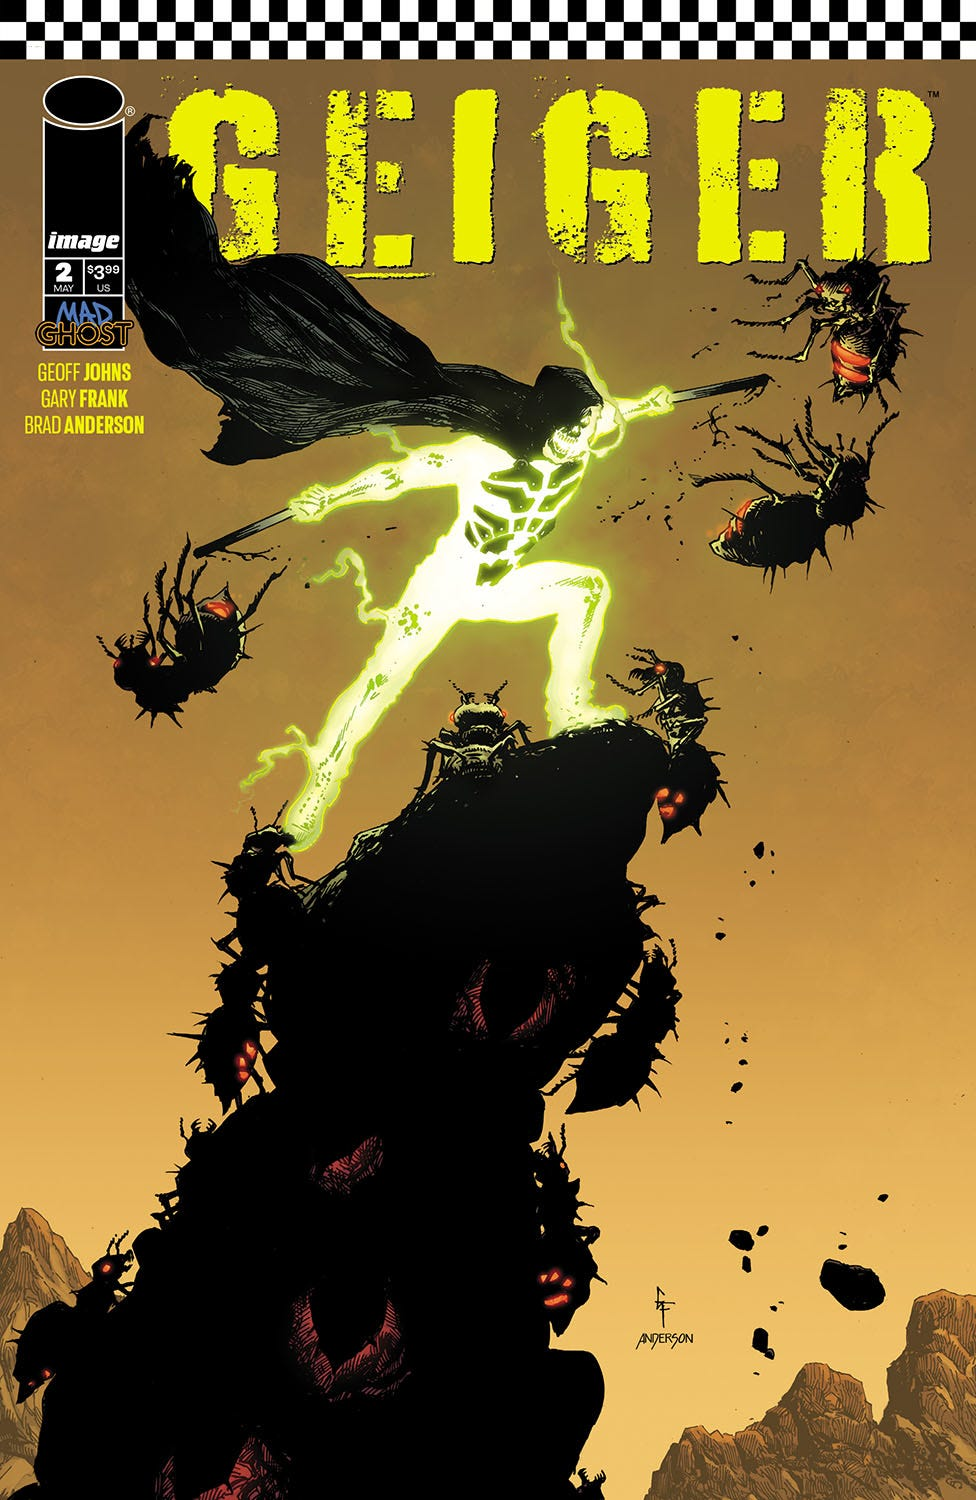 Geiger #2 (Cover A - Frank & Anderson)